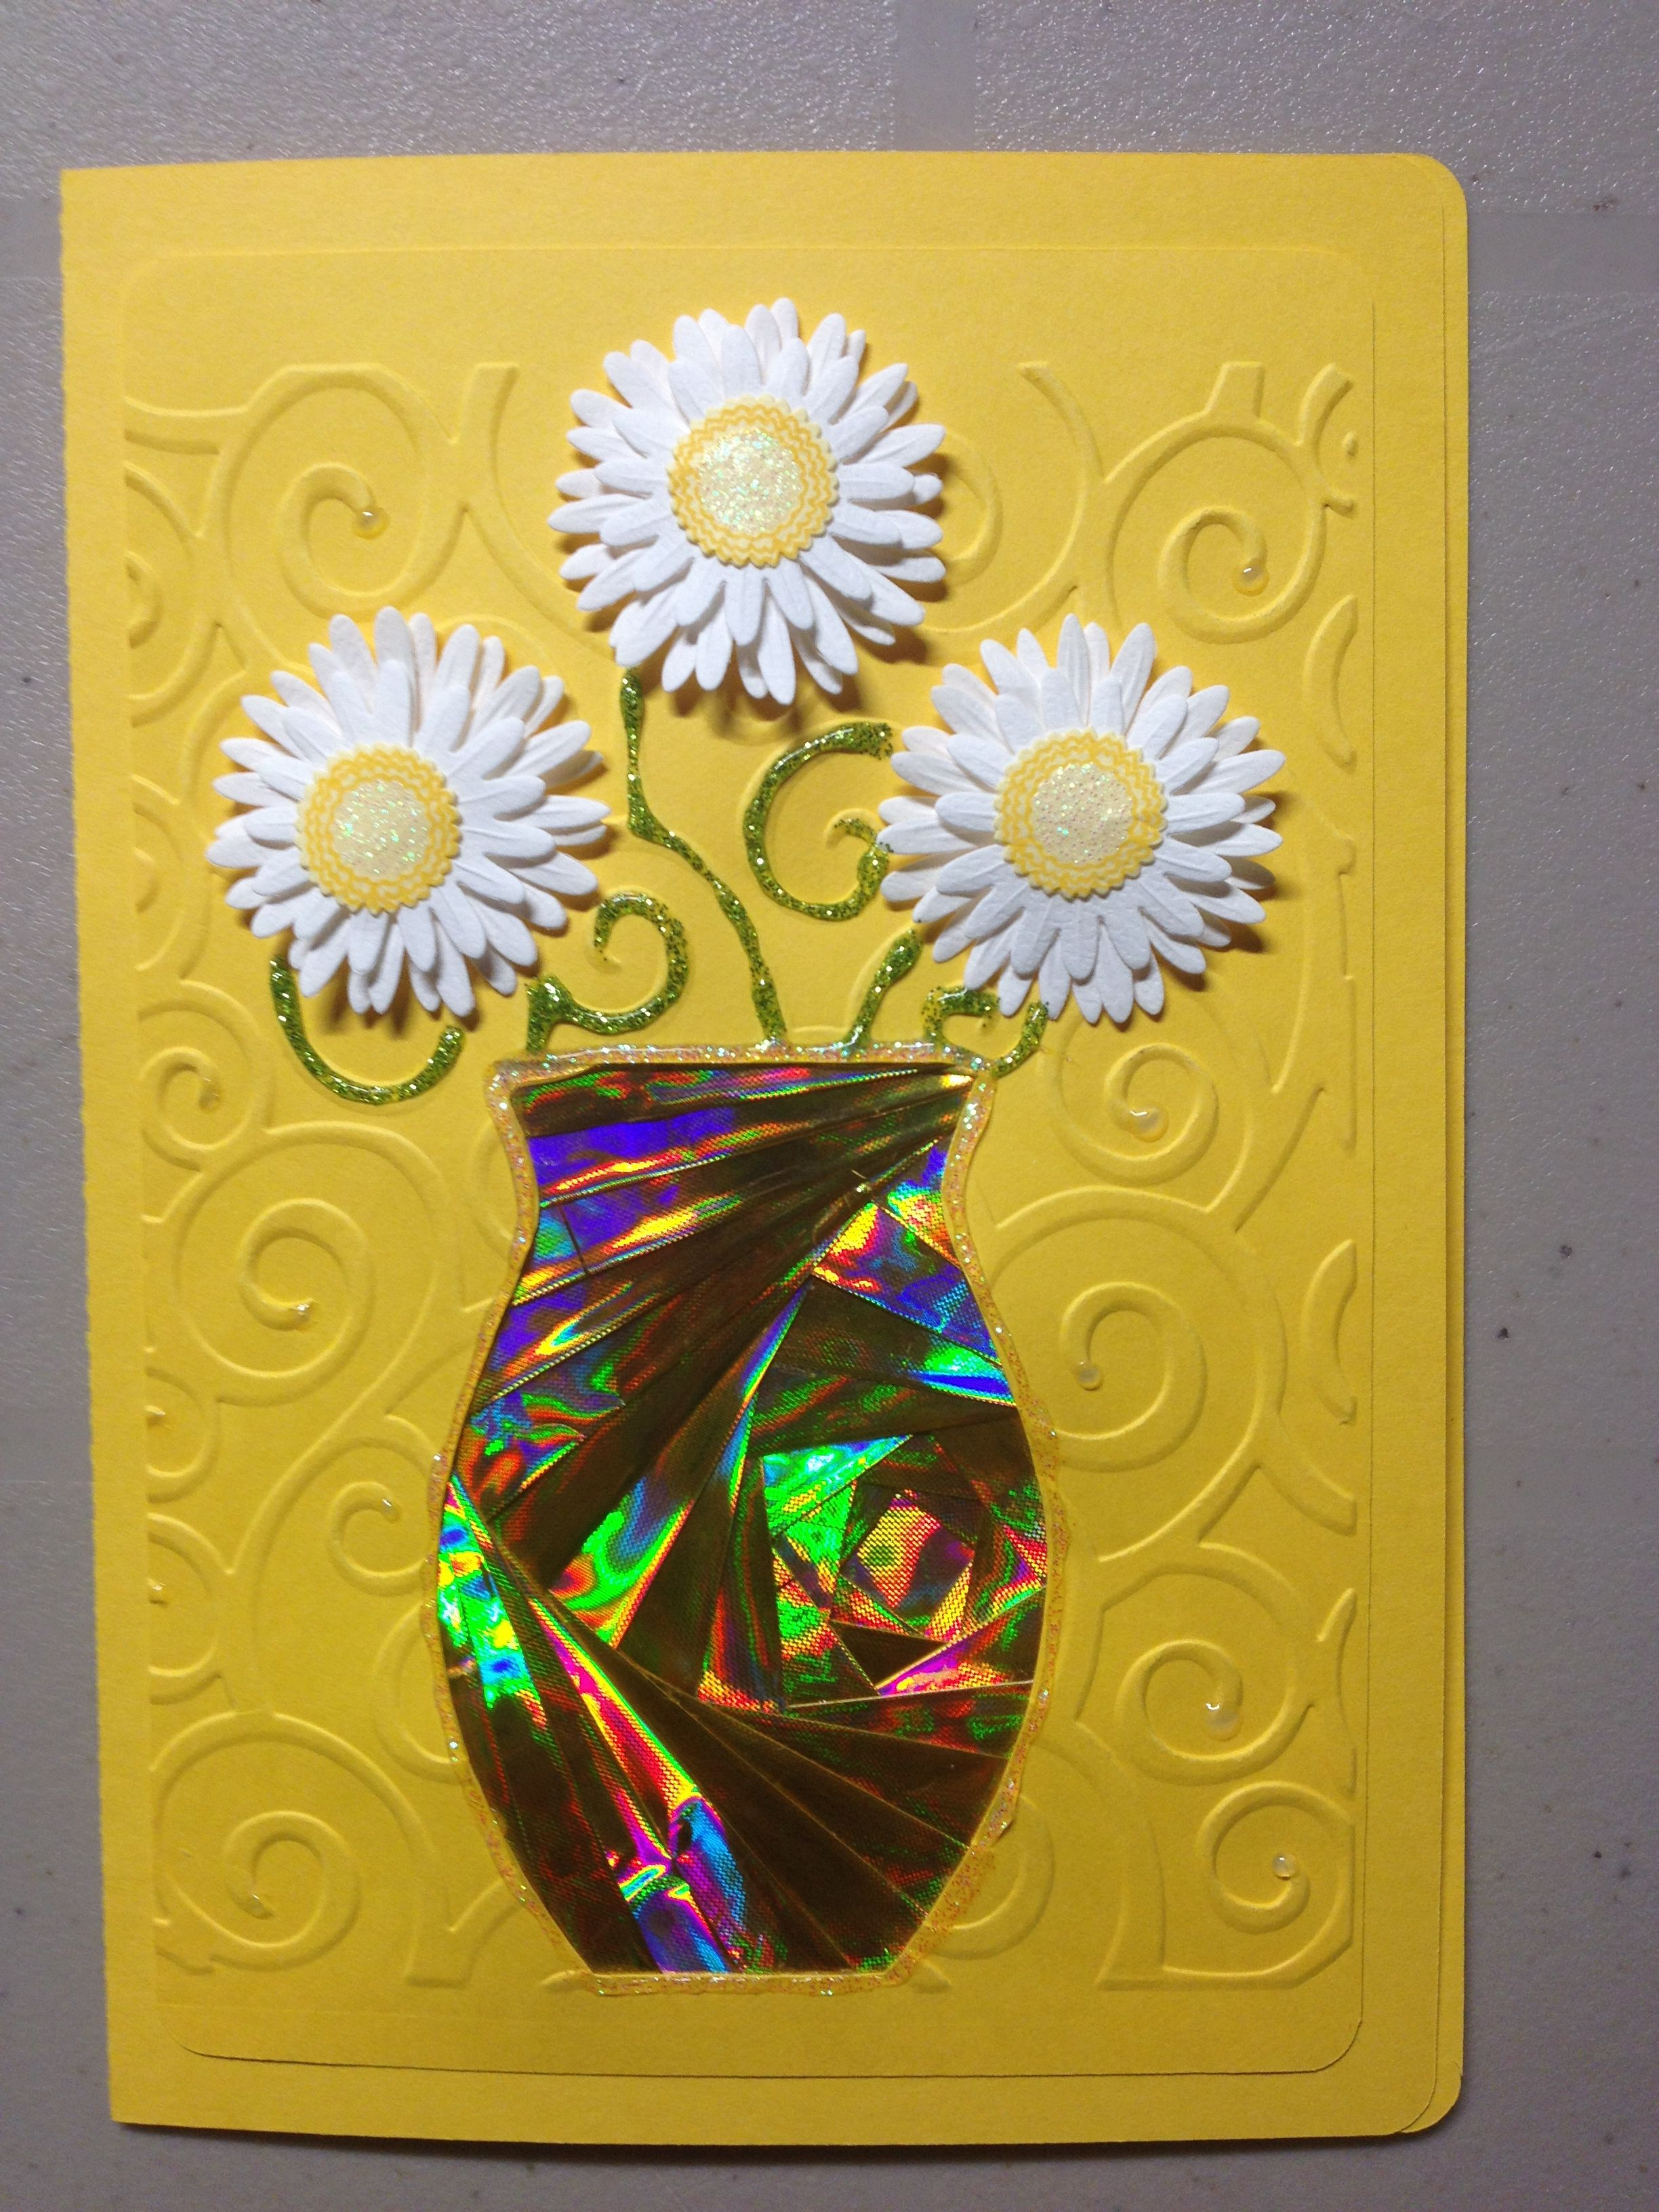 Iris Folding Flowers In Vase Using Christmas Foil Wrapping Paper